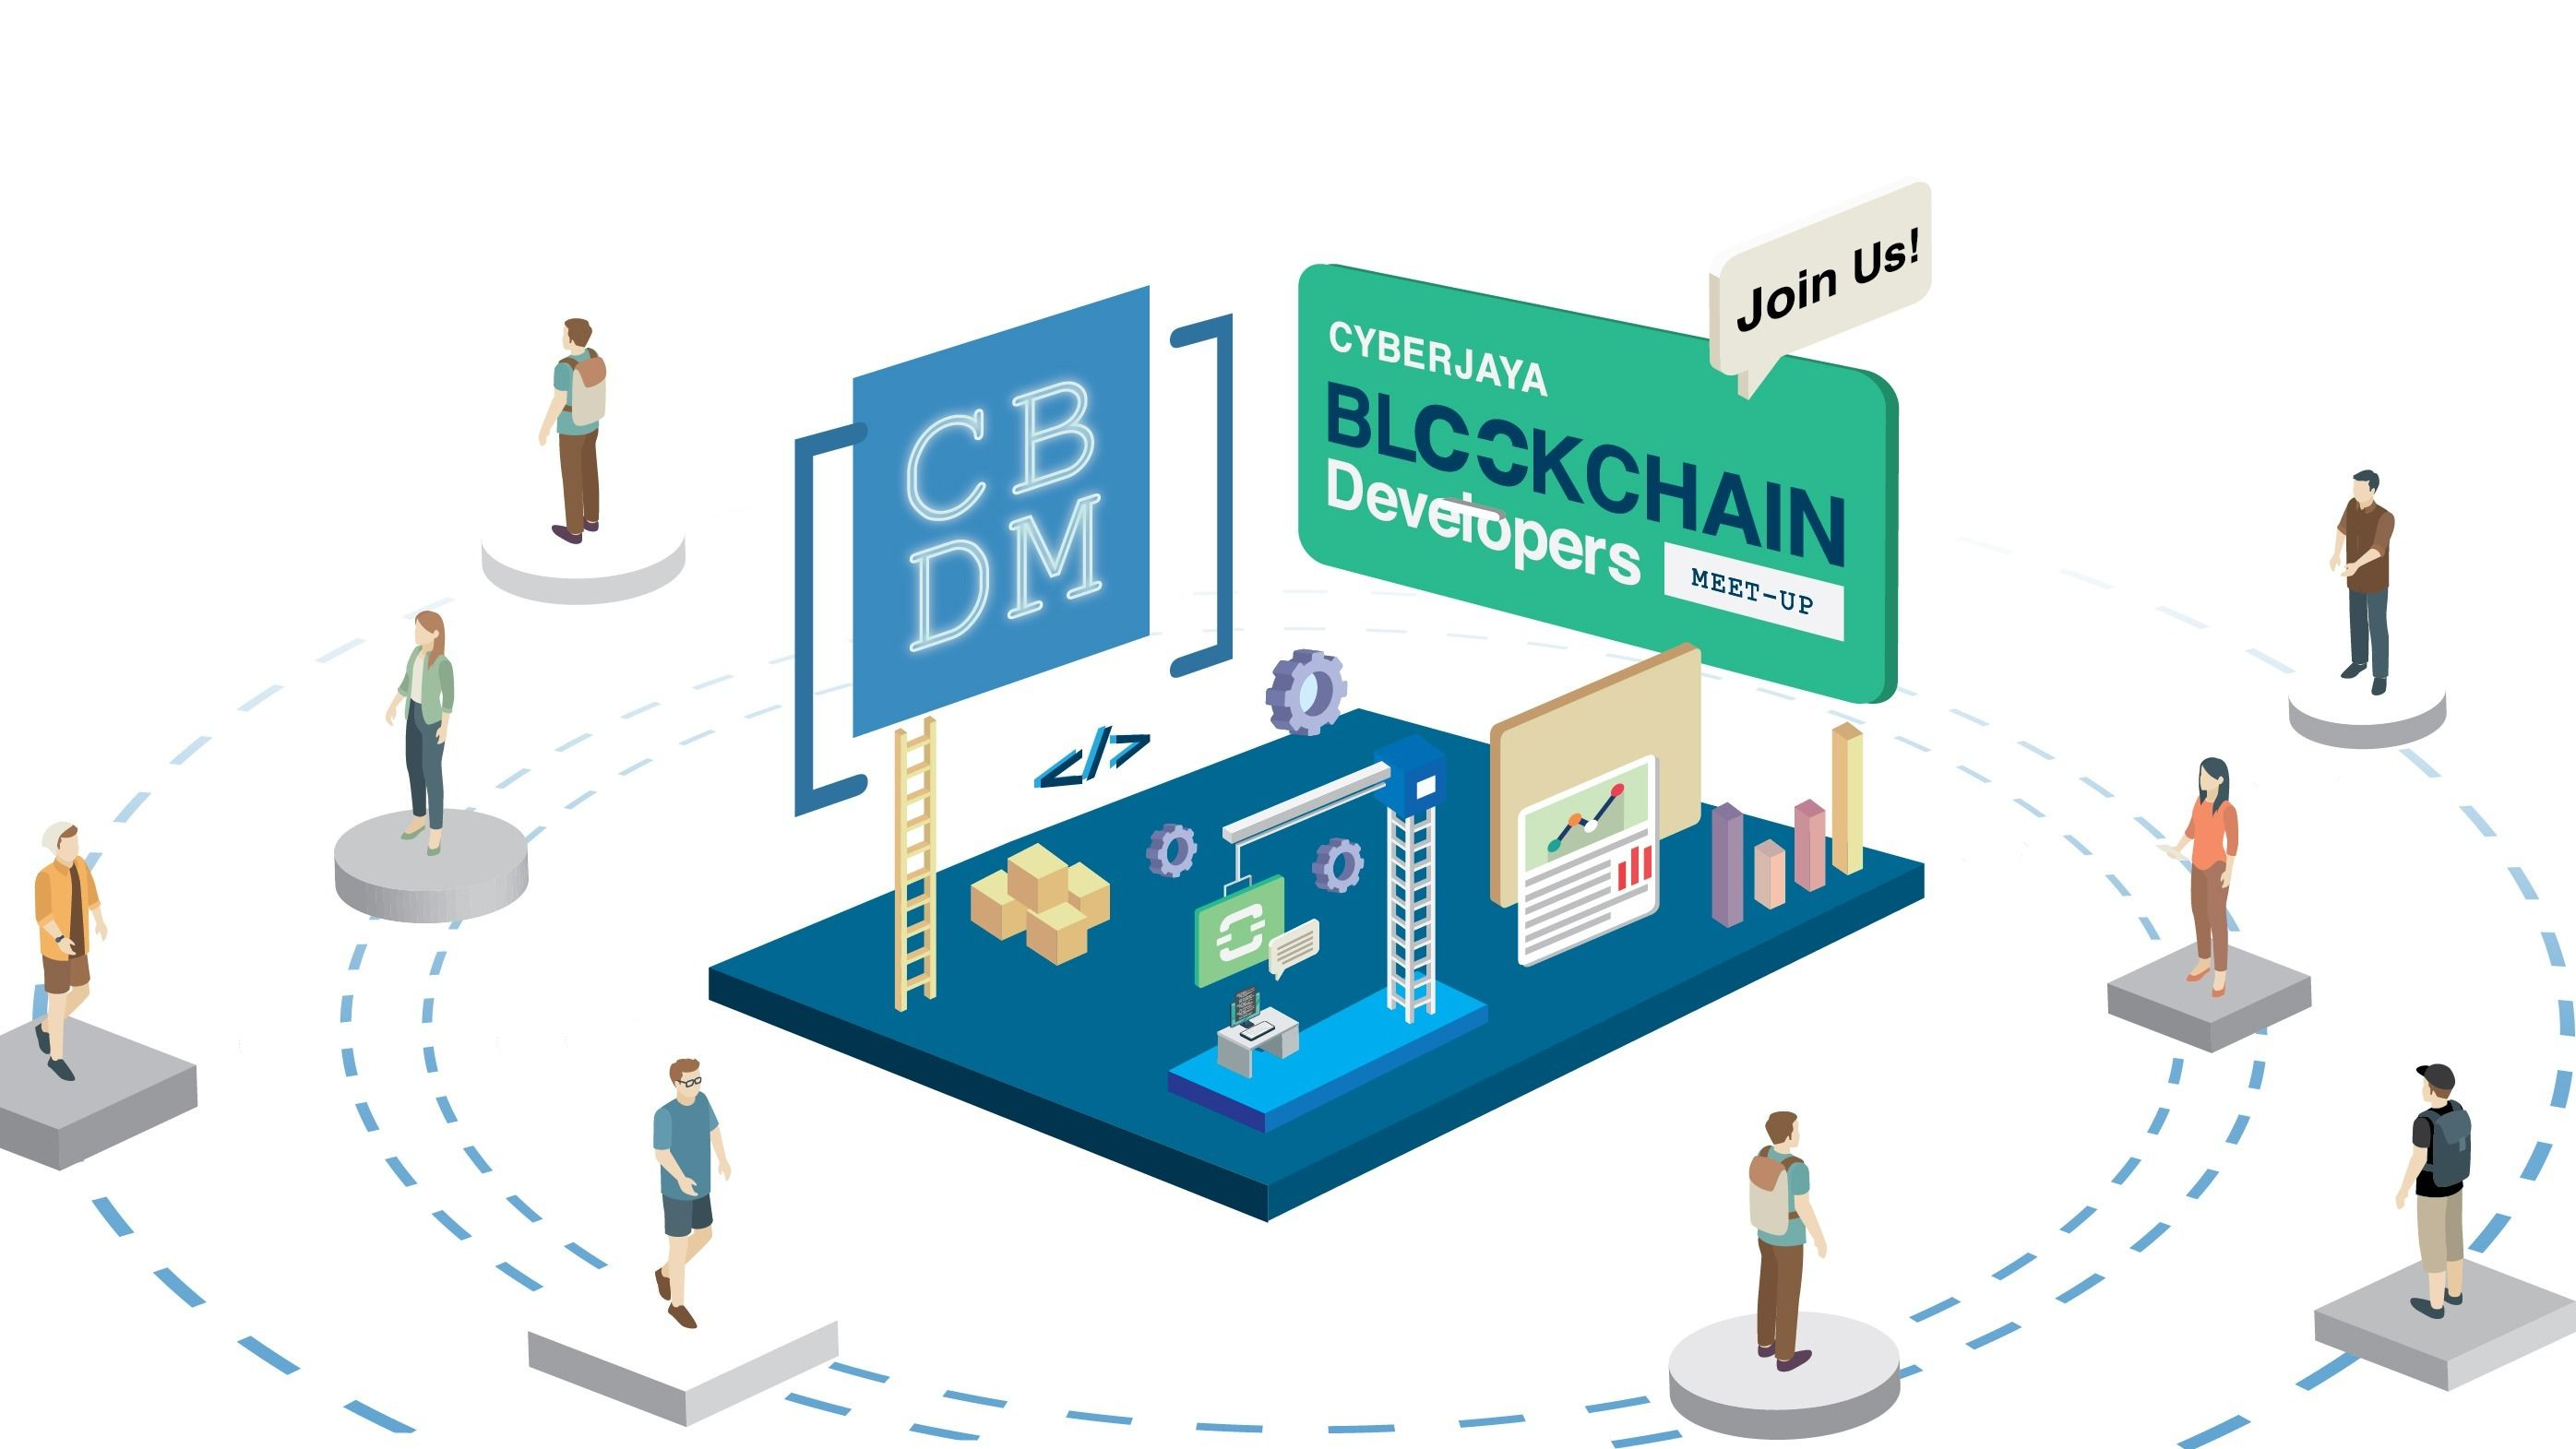 Cyberjaya Blockchain Developers Meetup